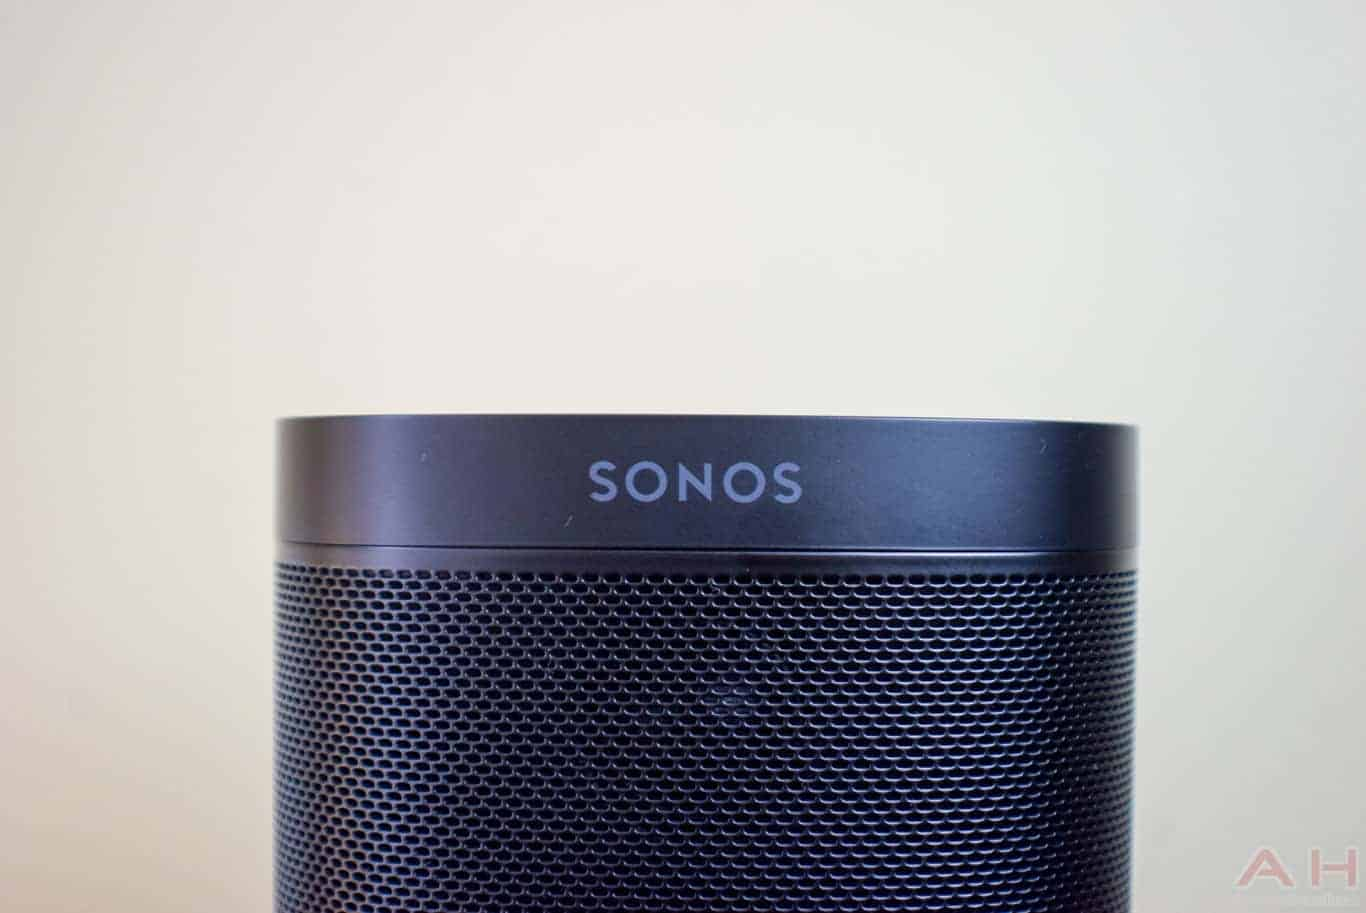 Sonos One Review AM AH 0162